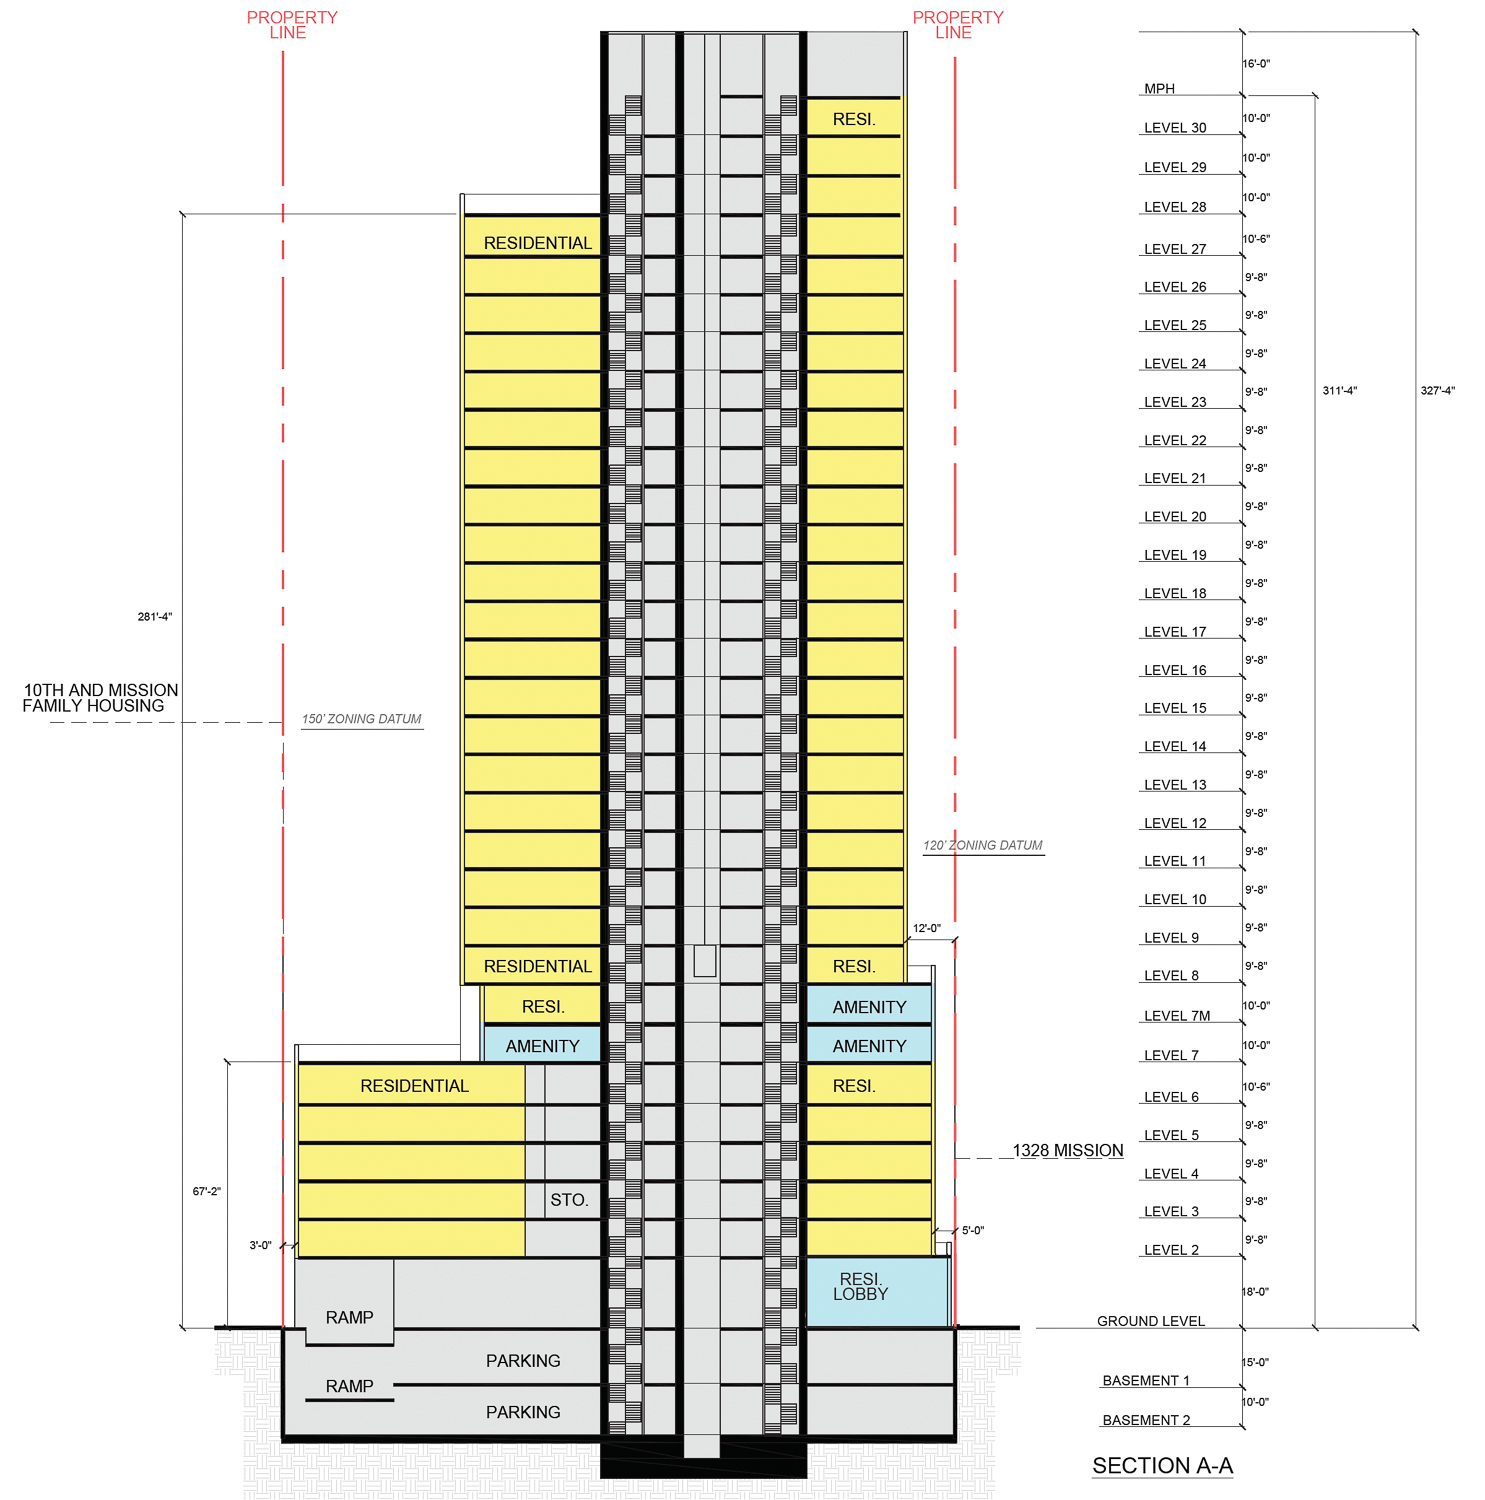 1338-1370 Mission Street vertical elevation, rendering by SmithGroup